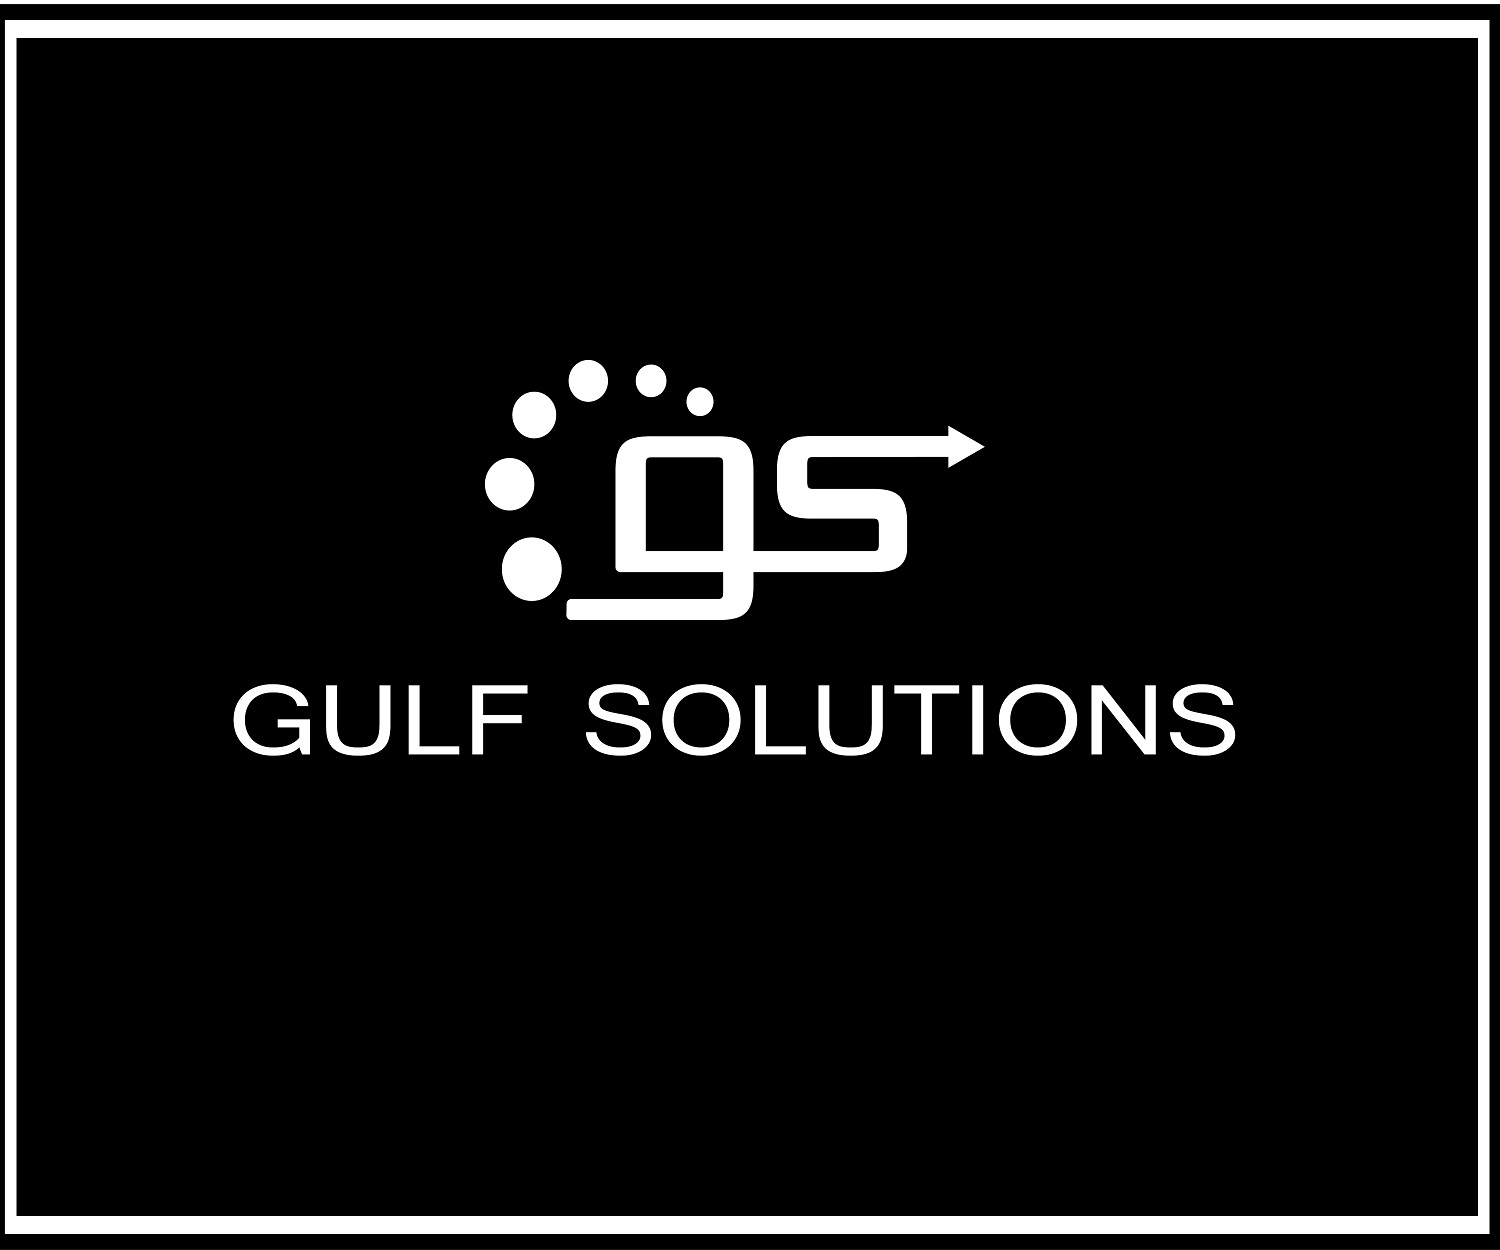 Logo Design by jhunzkie24 - Entry No. 71 in the Logo Design Contest New Logo Design for Gulf solutions company.